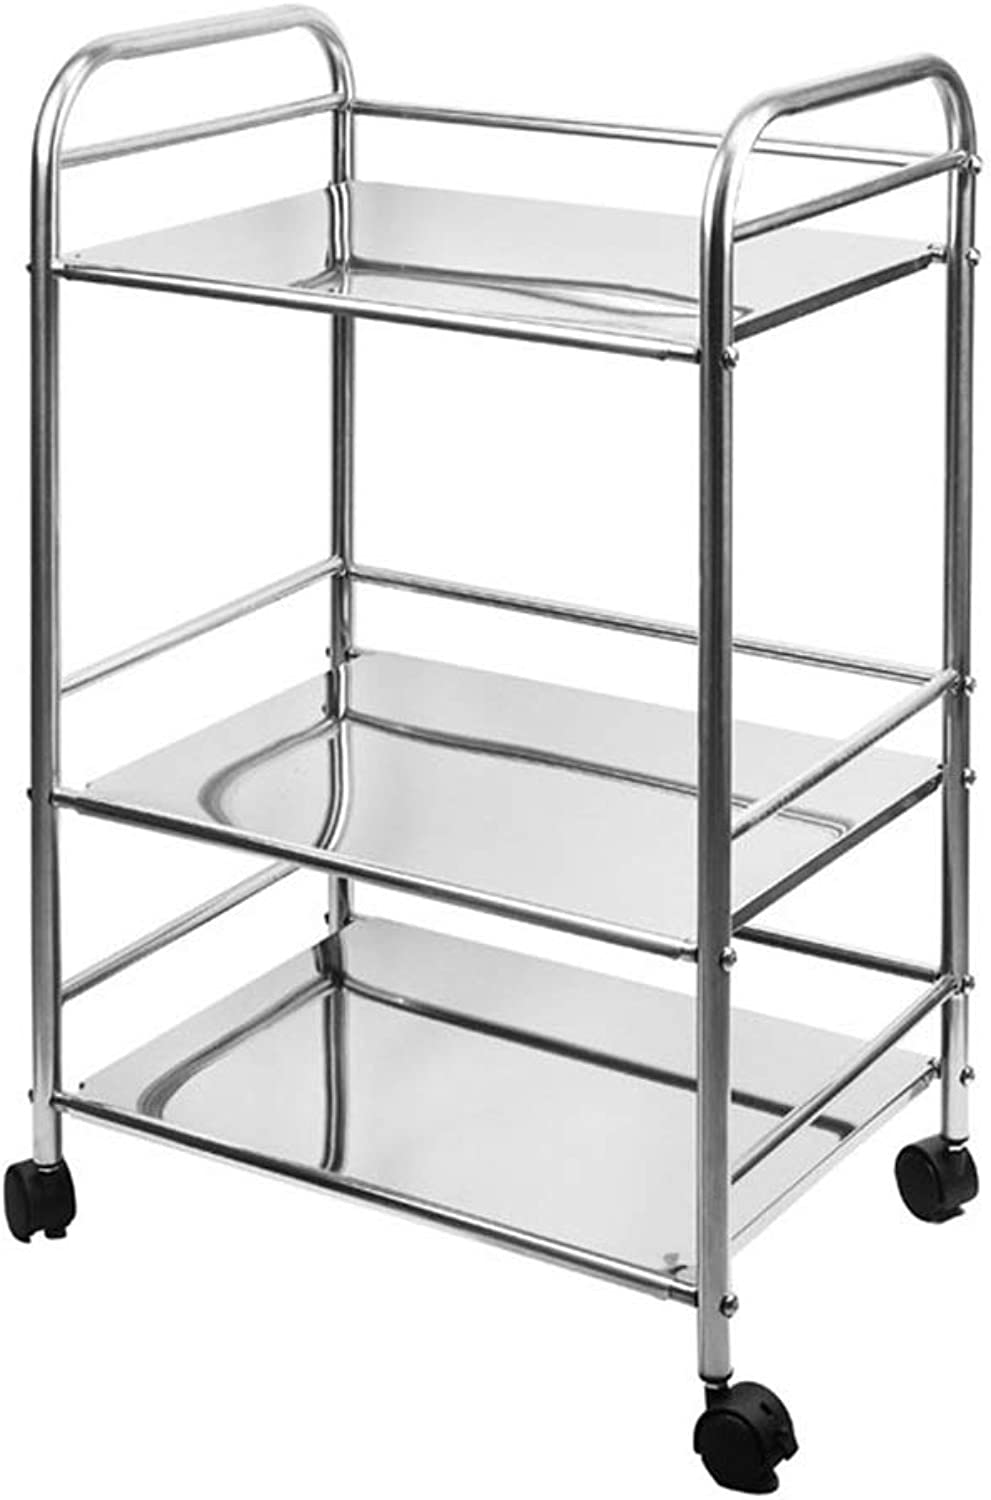 Kitchen Shelf Microwave Shelf with Wheels Can Be Moved Or Fixed Stainless Steel Multi-Layer Finishing Frame 3 Layers Multi-Size Length 15.7-19.6-23.6 Inches